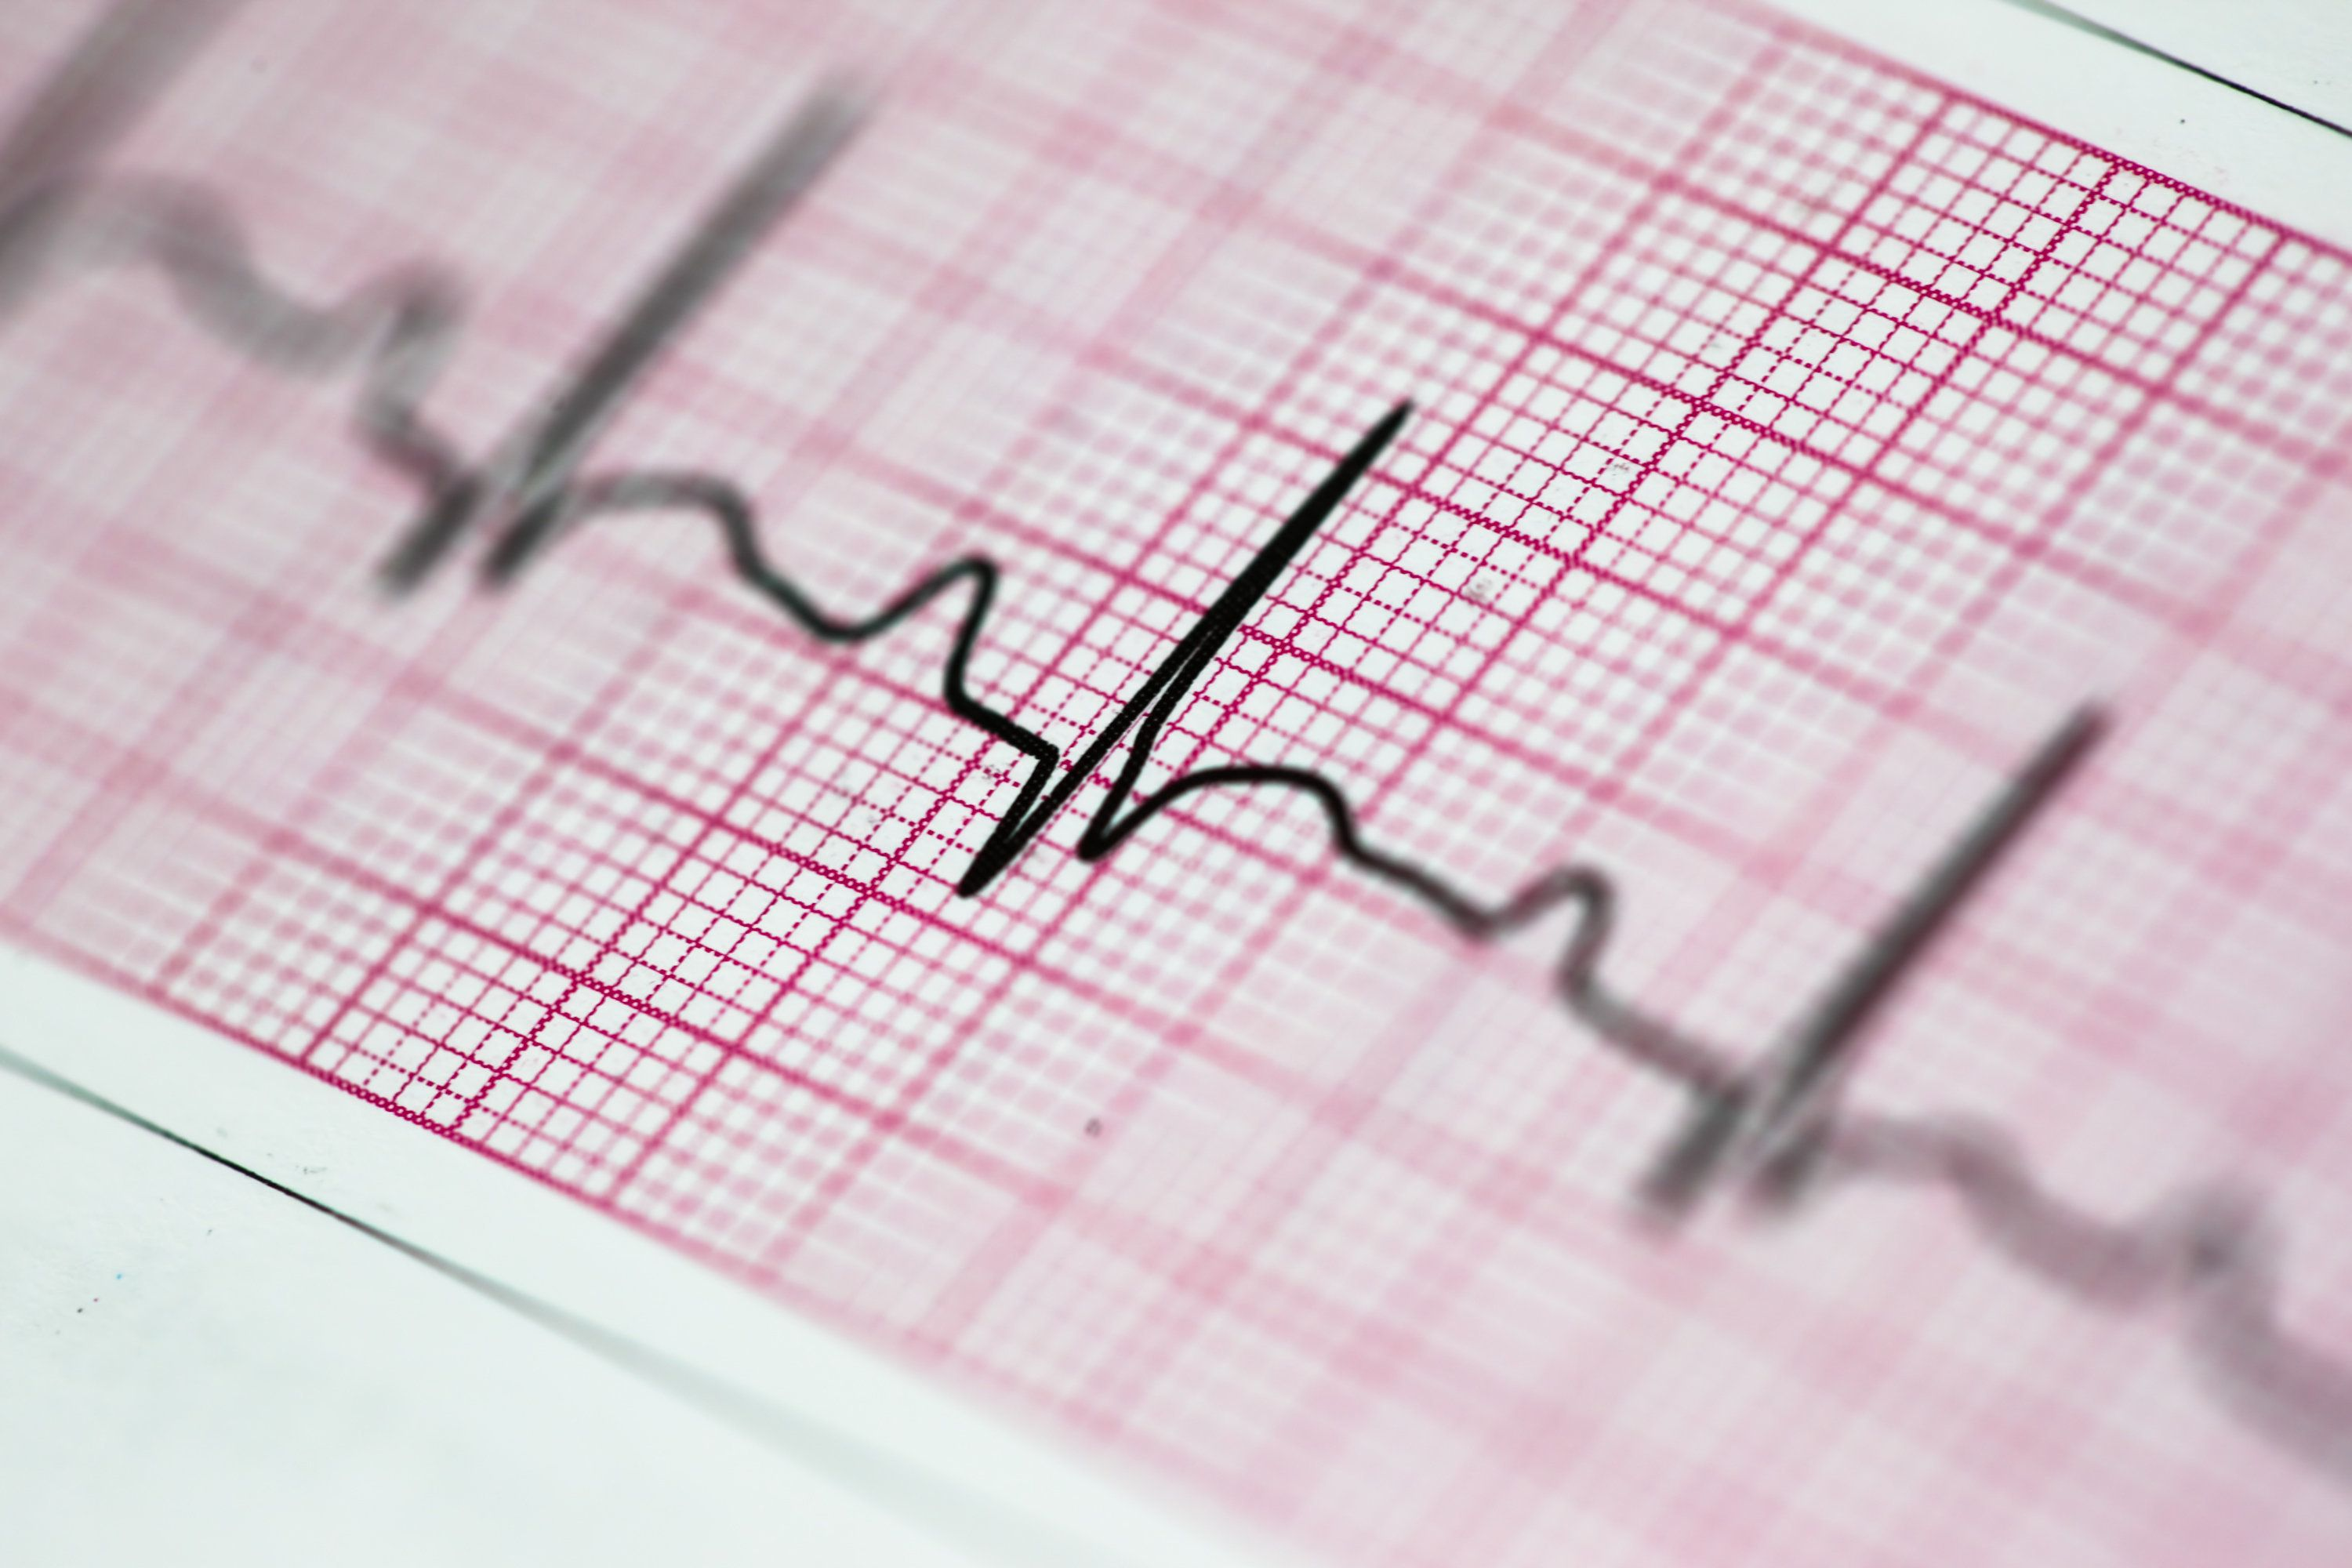 Earlier periods linked to higher risk for heart disease, stroke